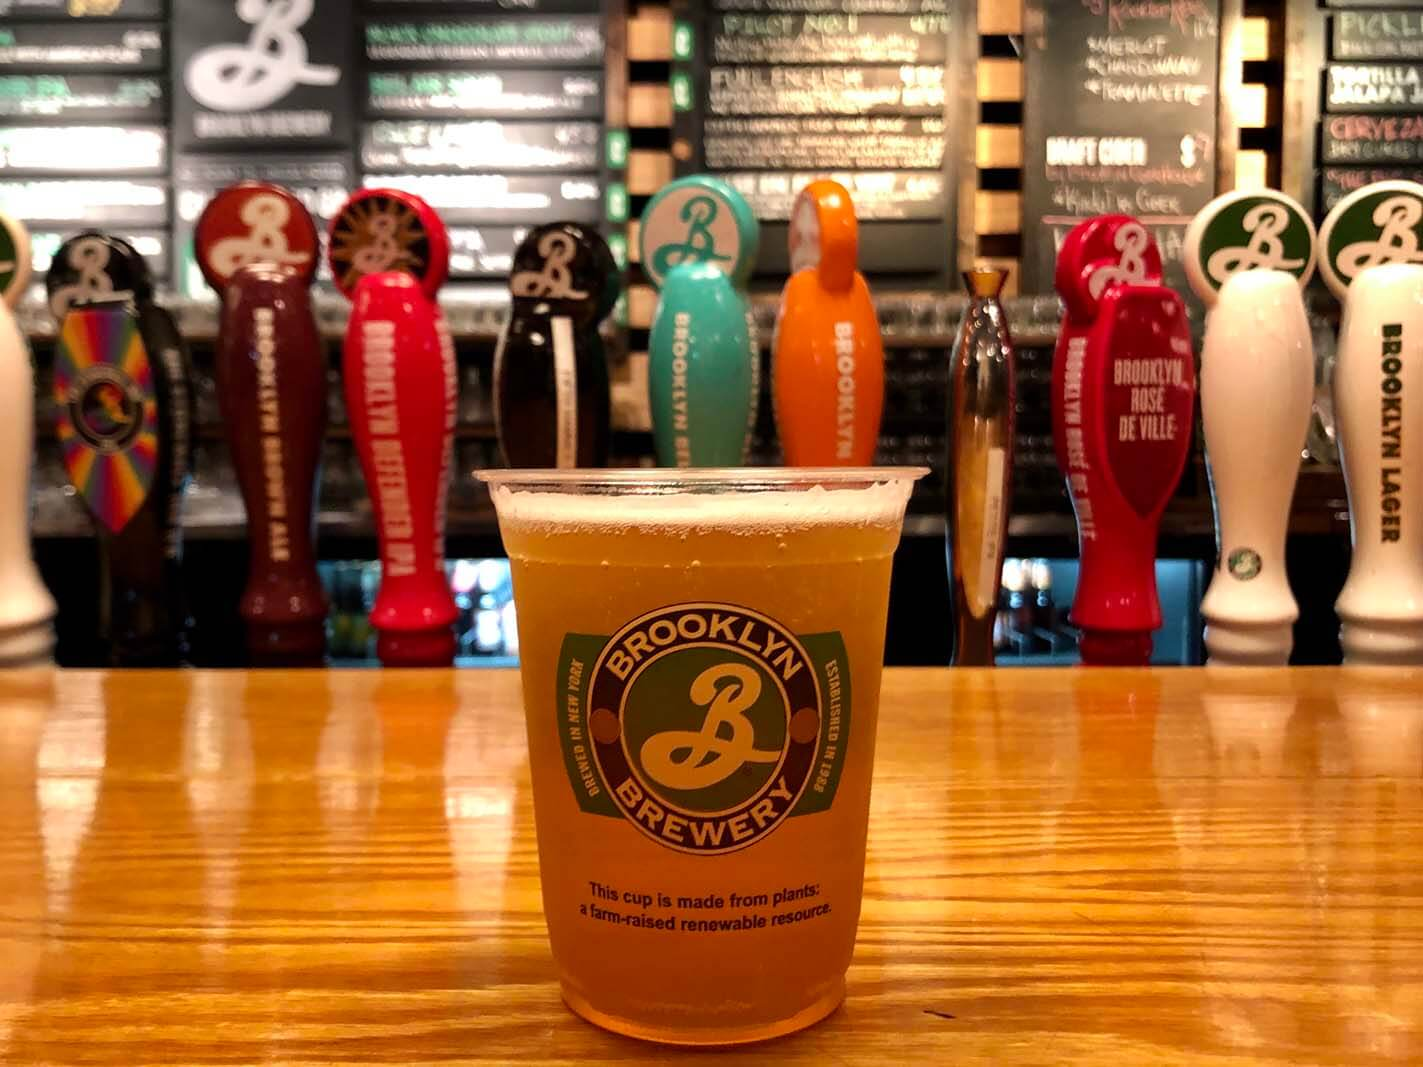 Brooklyn Brewery bar in Williamsburg Brooklyn